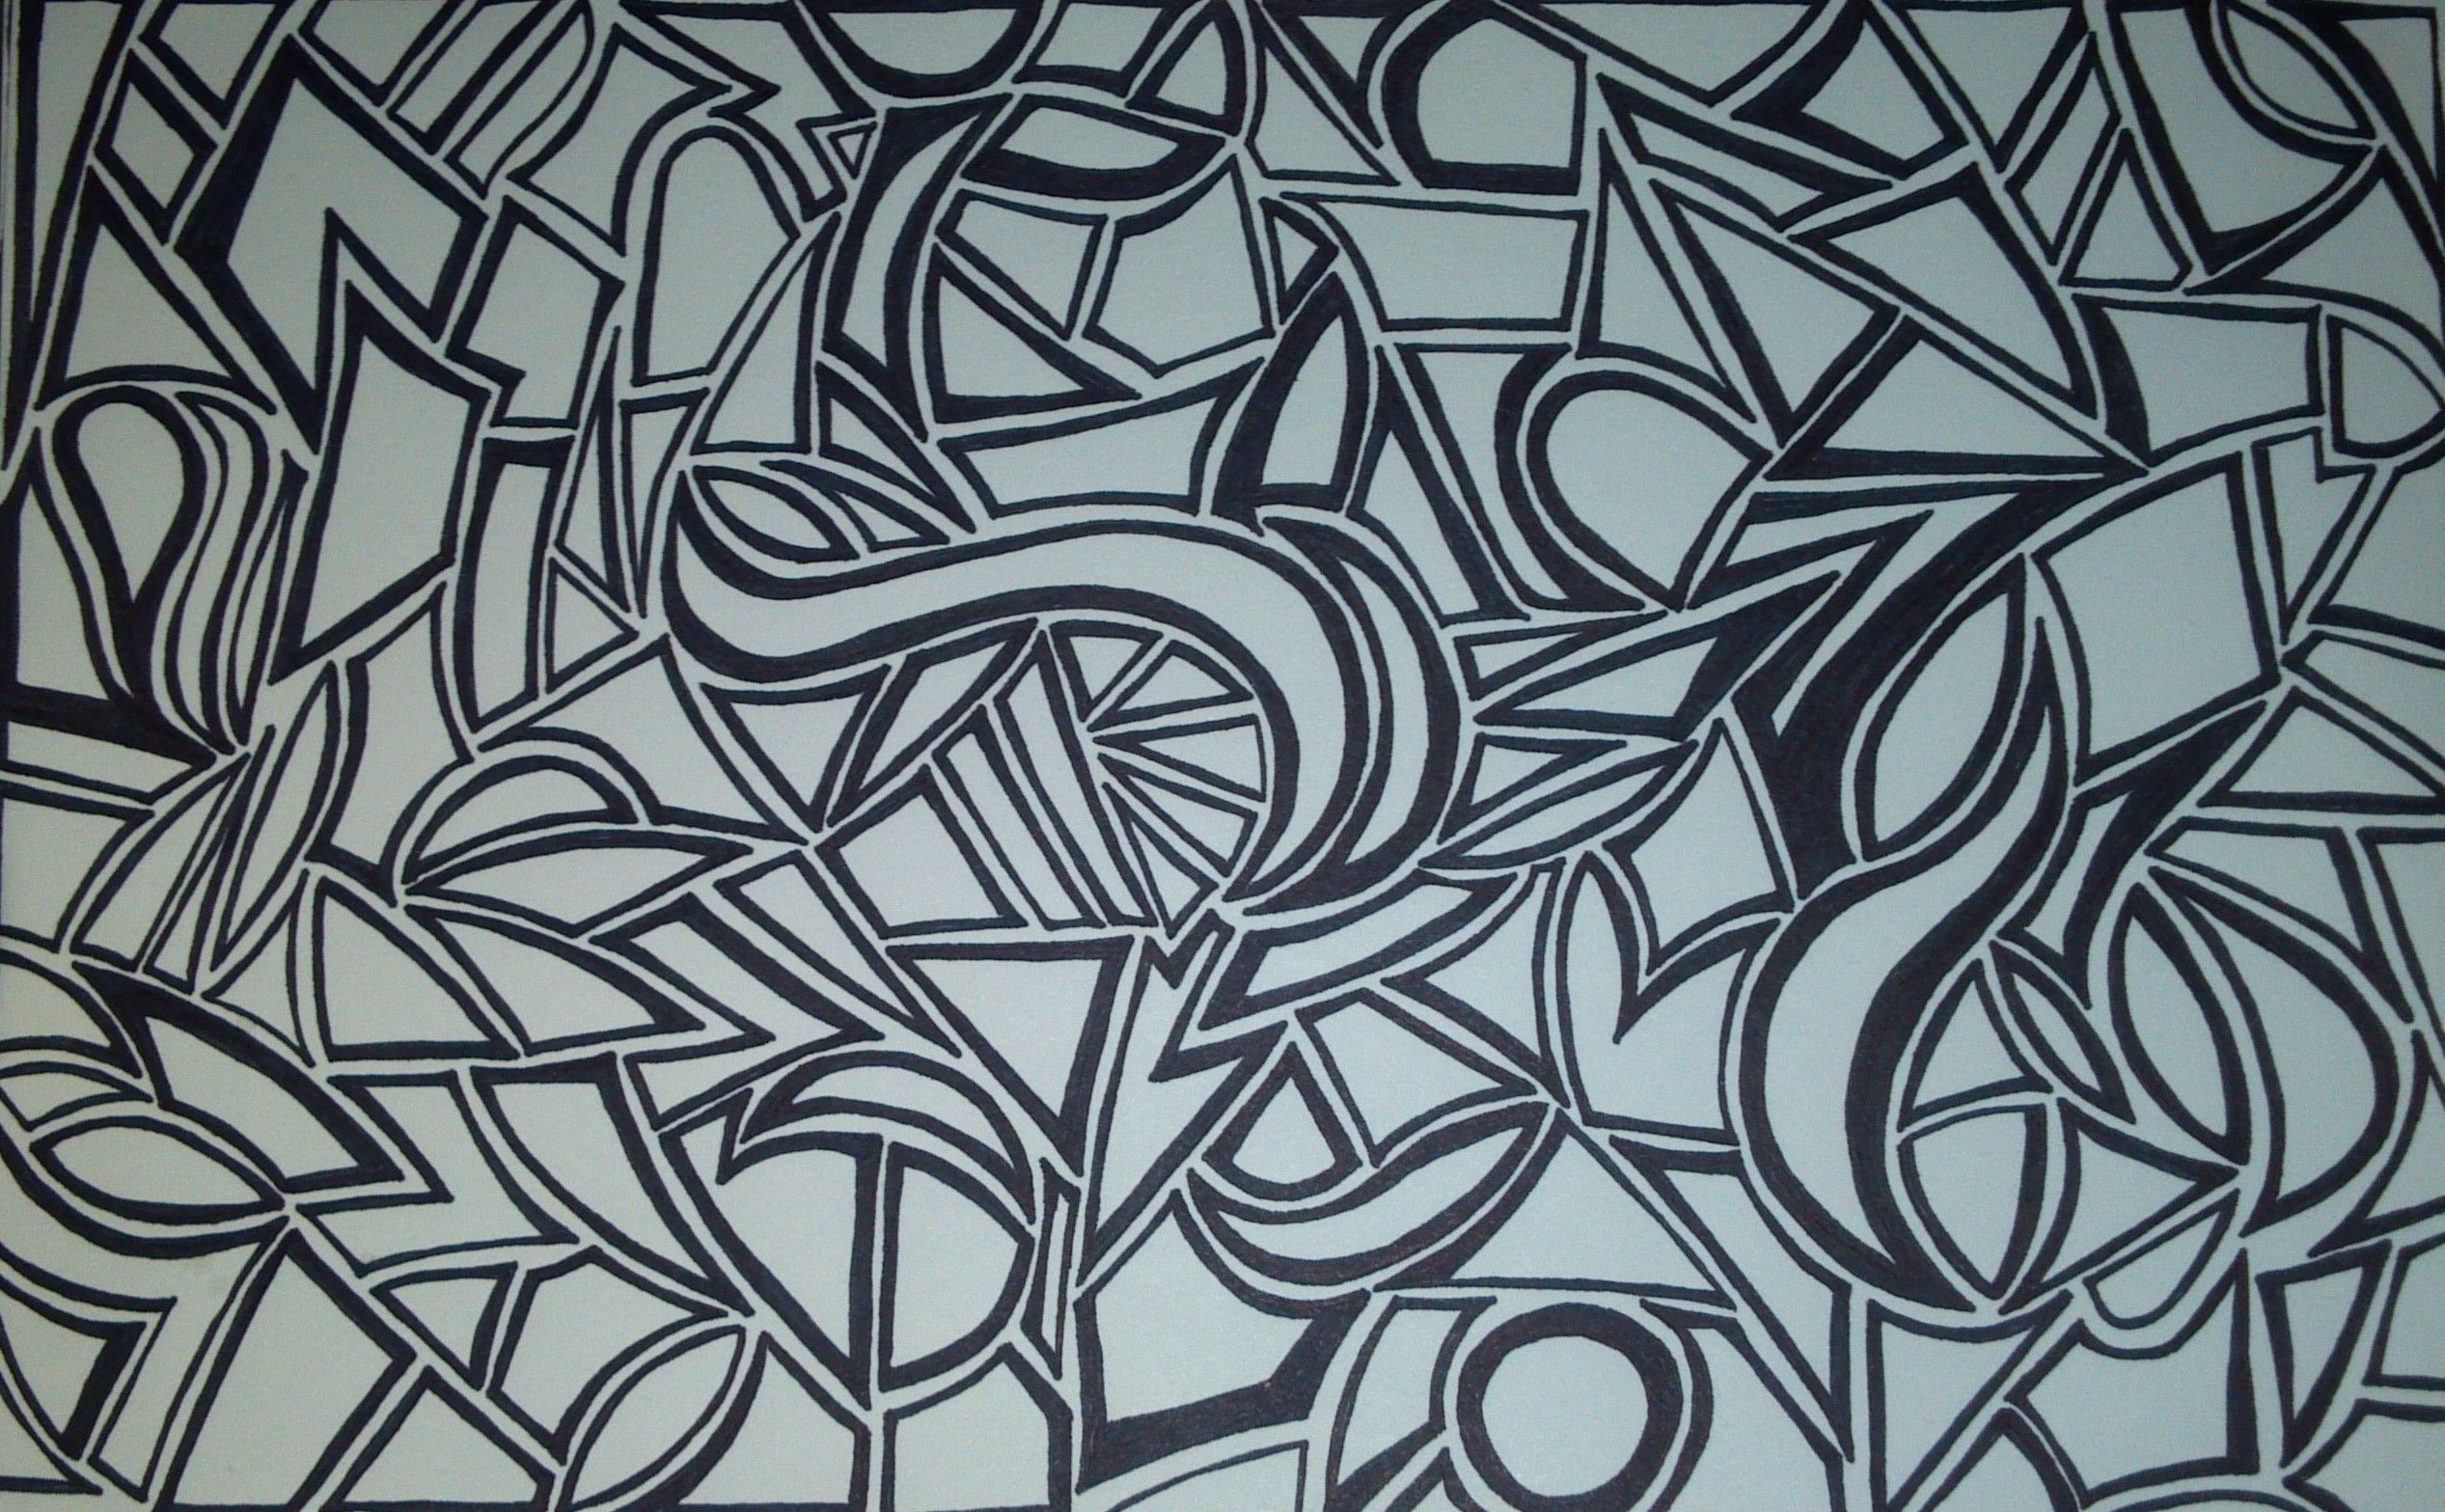 done with sharpie markers - coloring page - SF | My marker ...